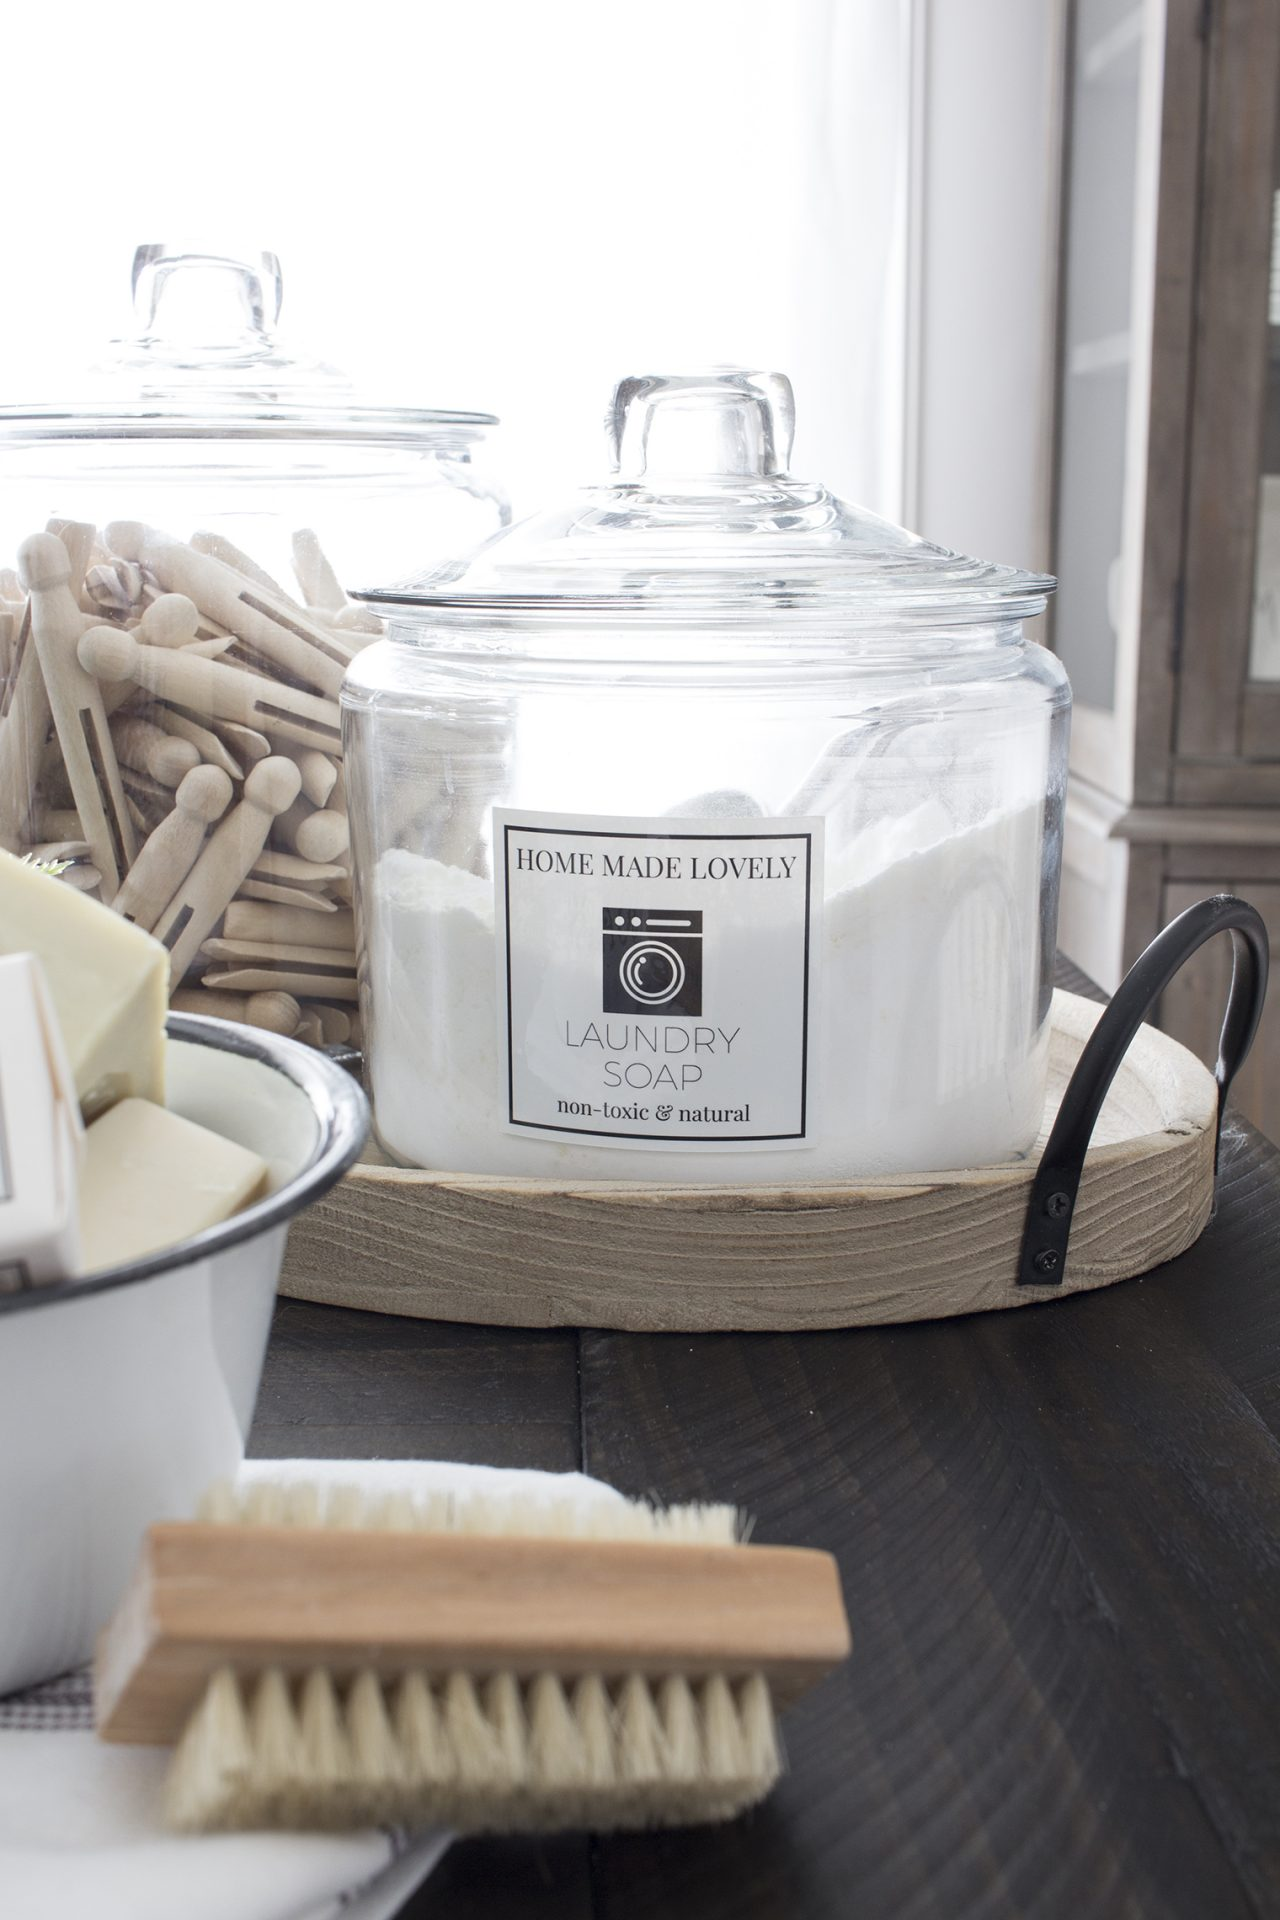 Homemade lovely laundry detergent